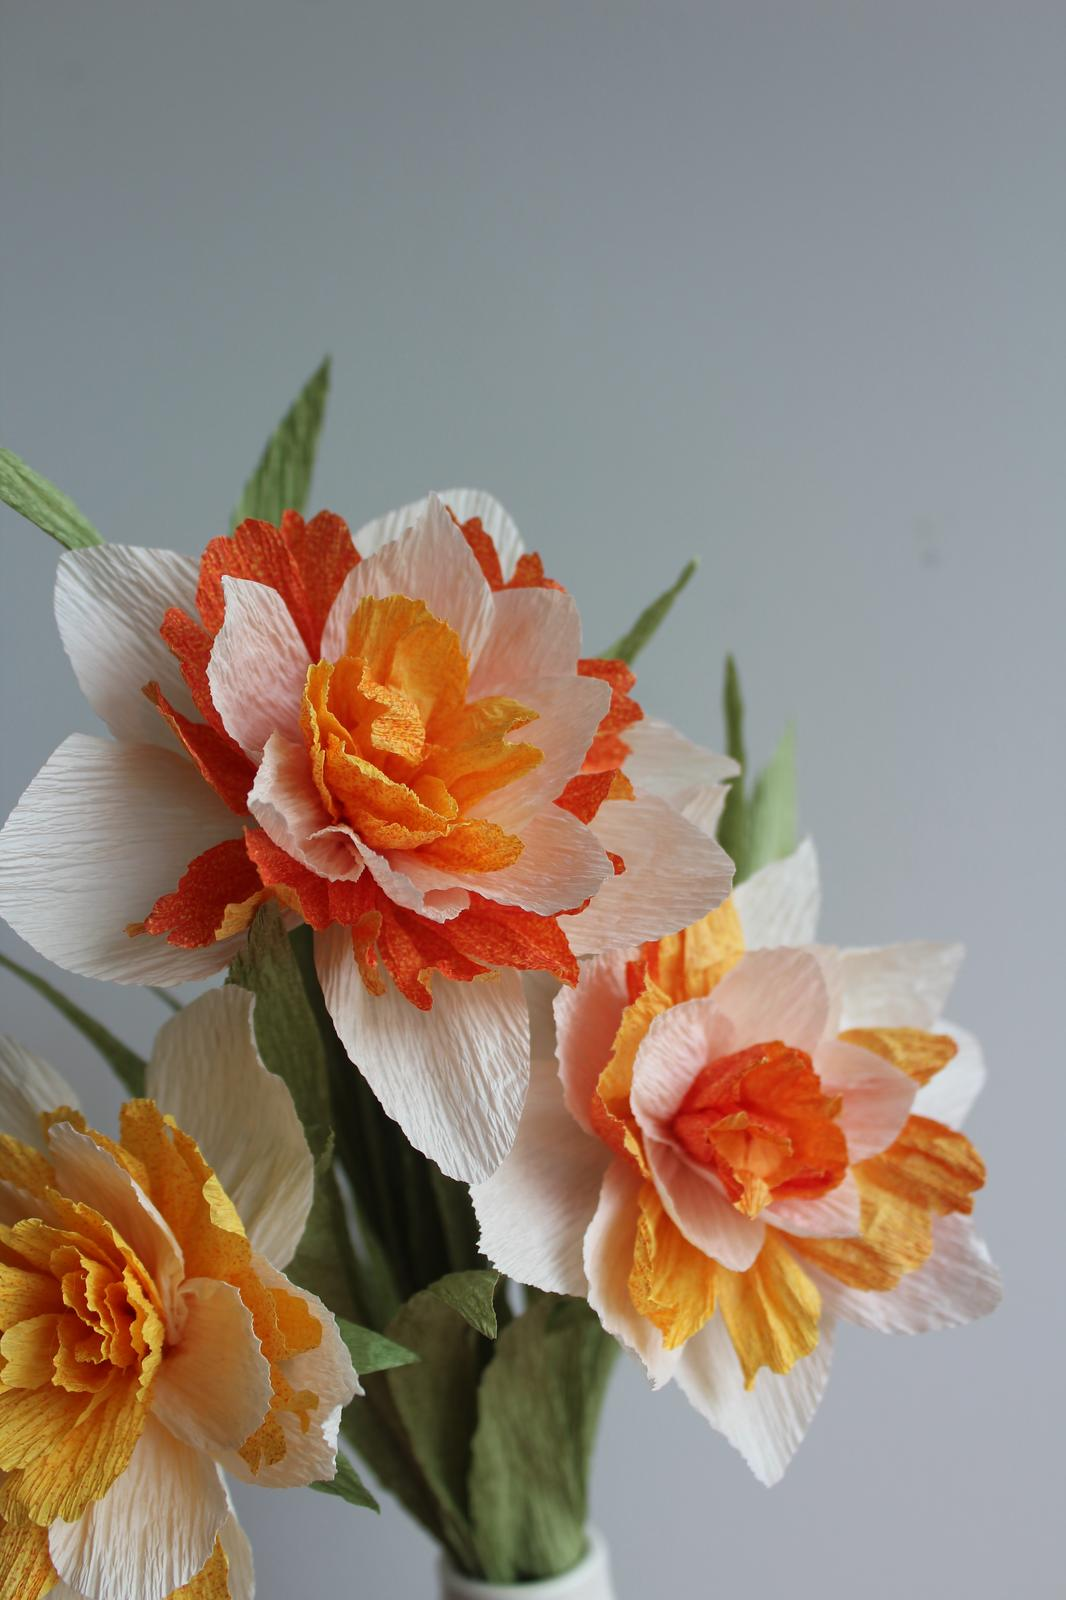 Paper Double Daffodils, photographed by Carrissa Wu